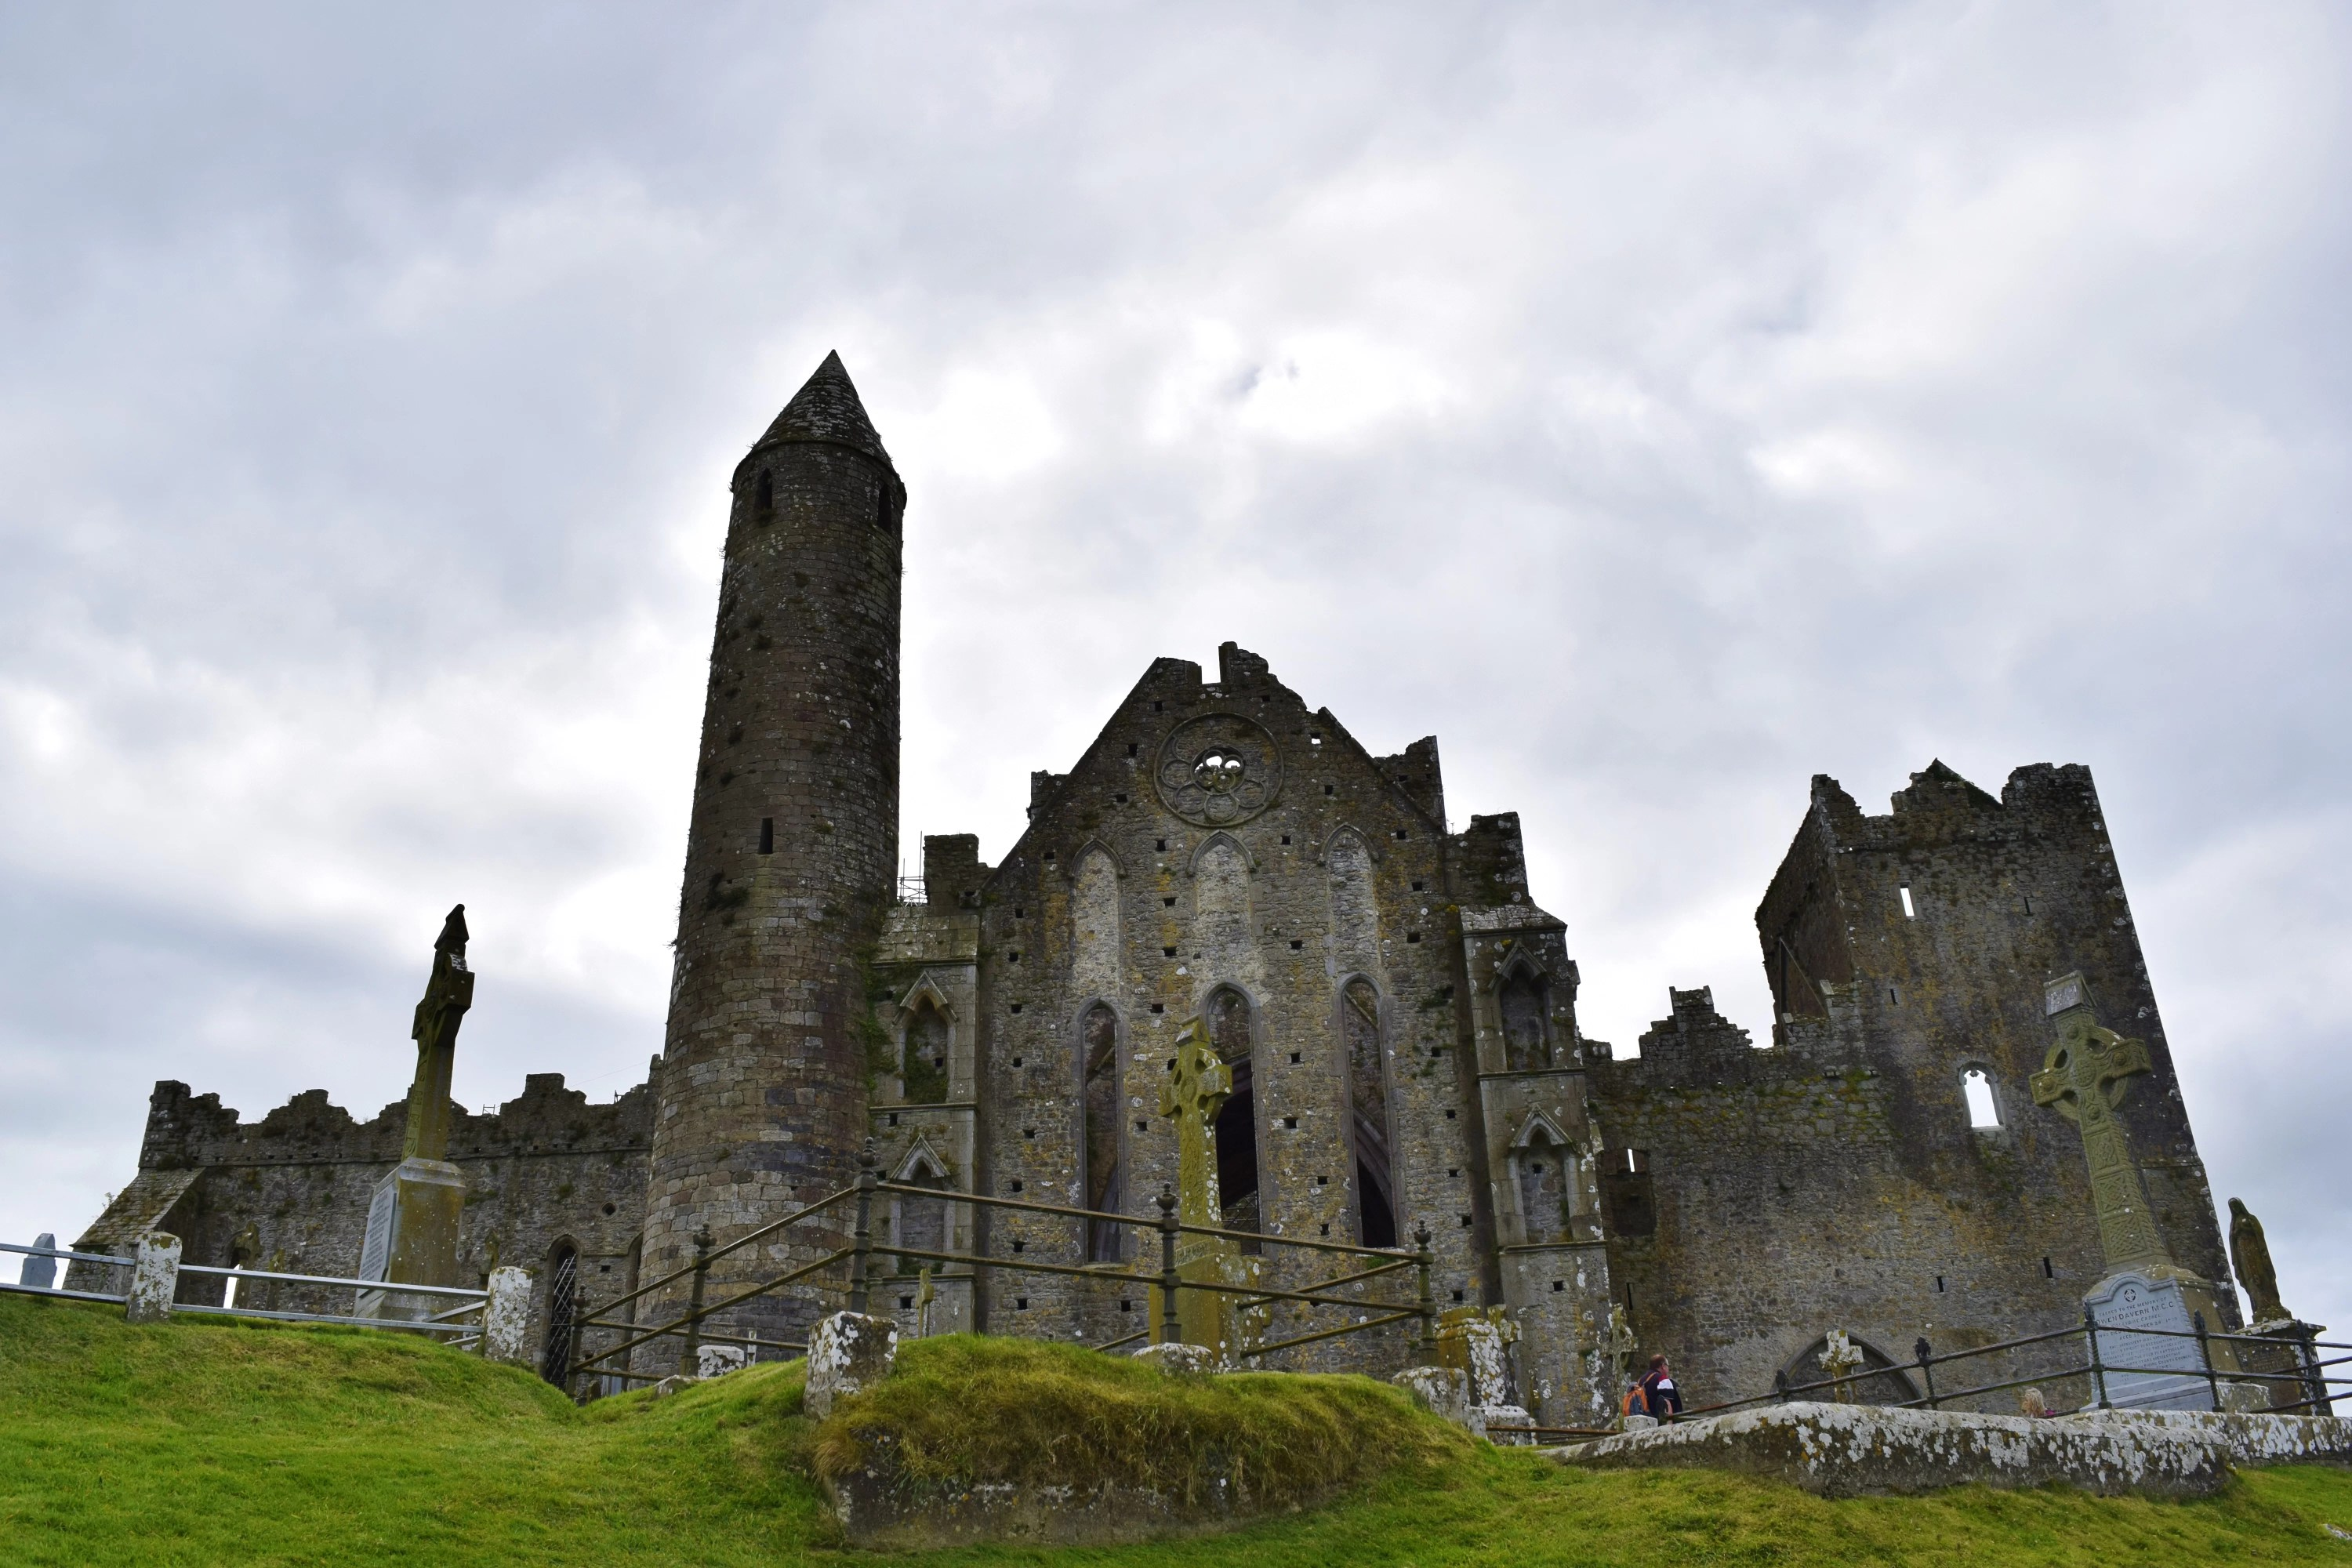 The Rock of Cashel in Cashel, Ireland.